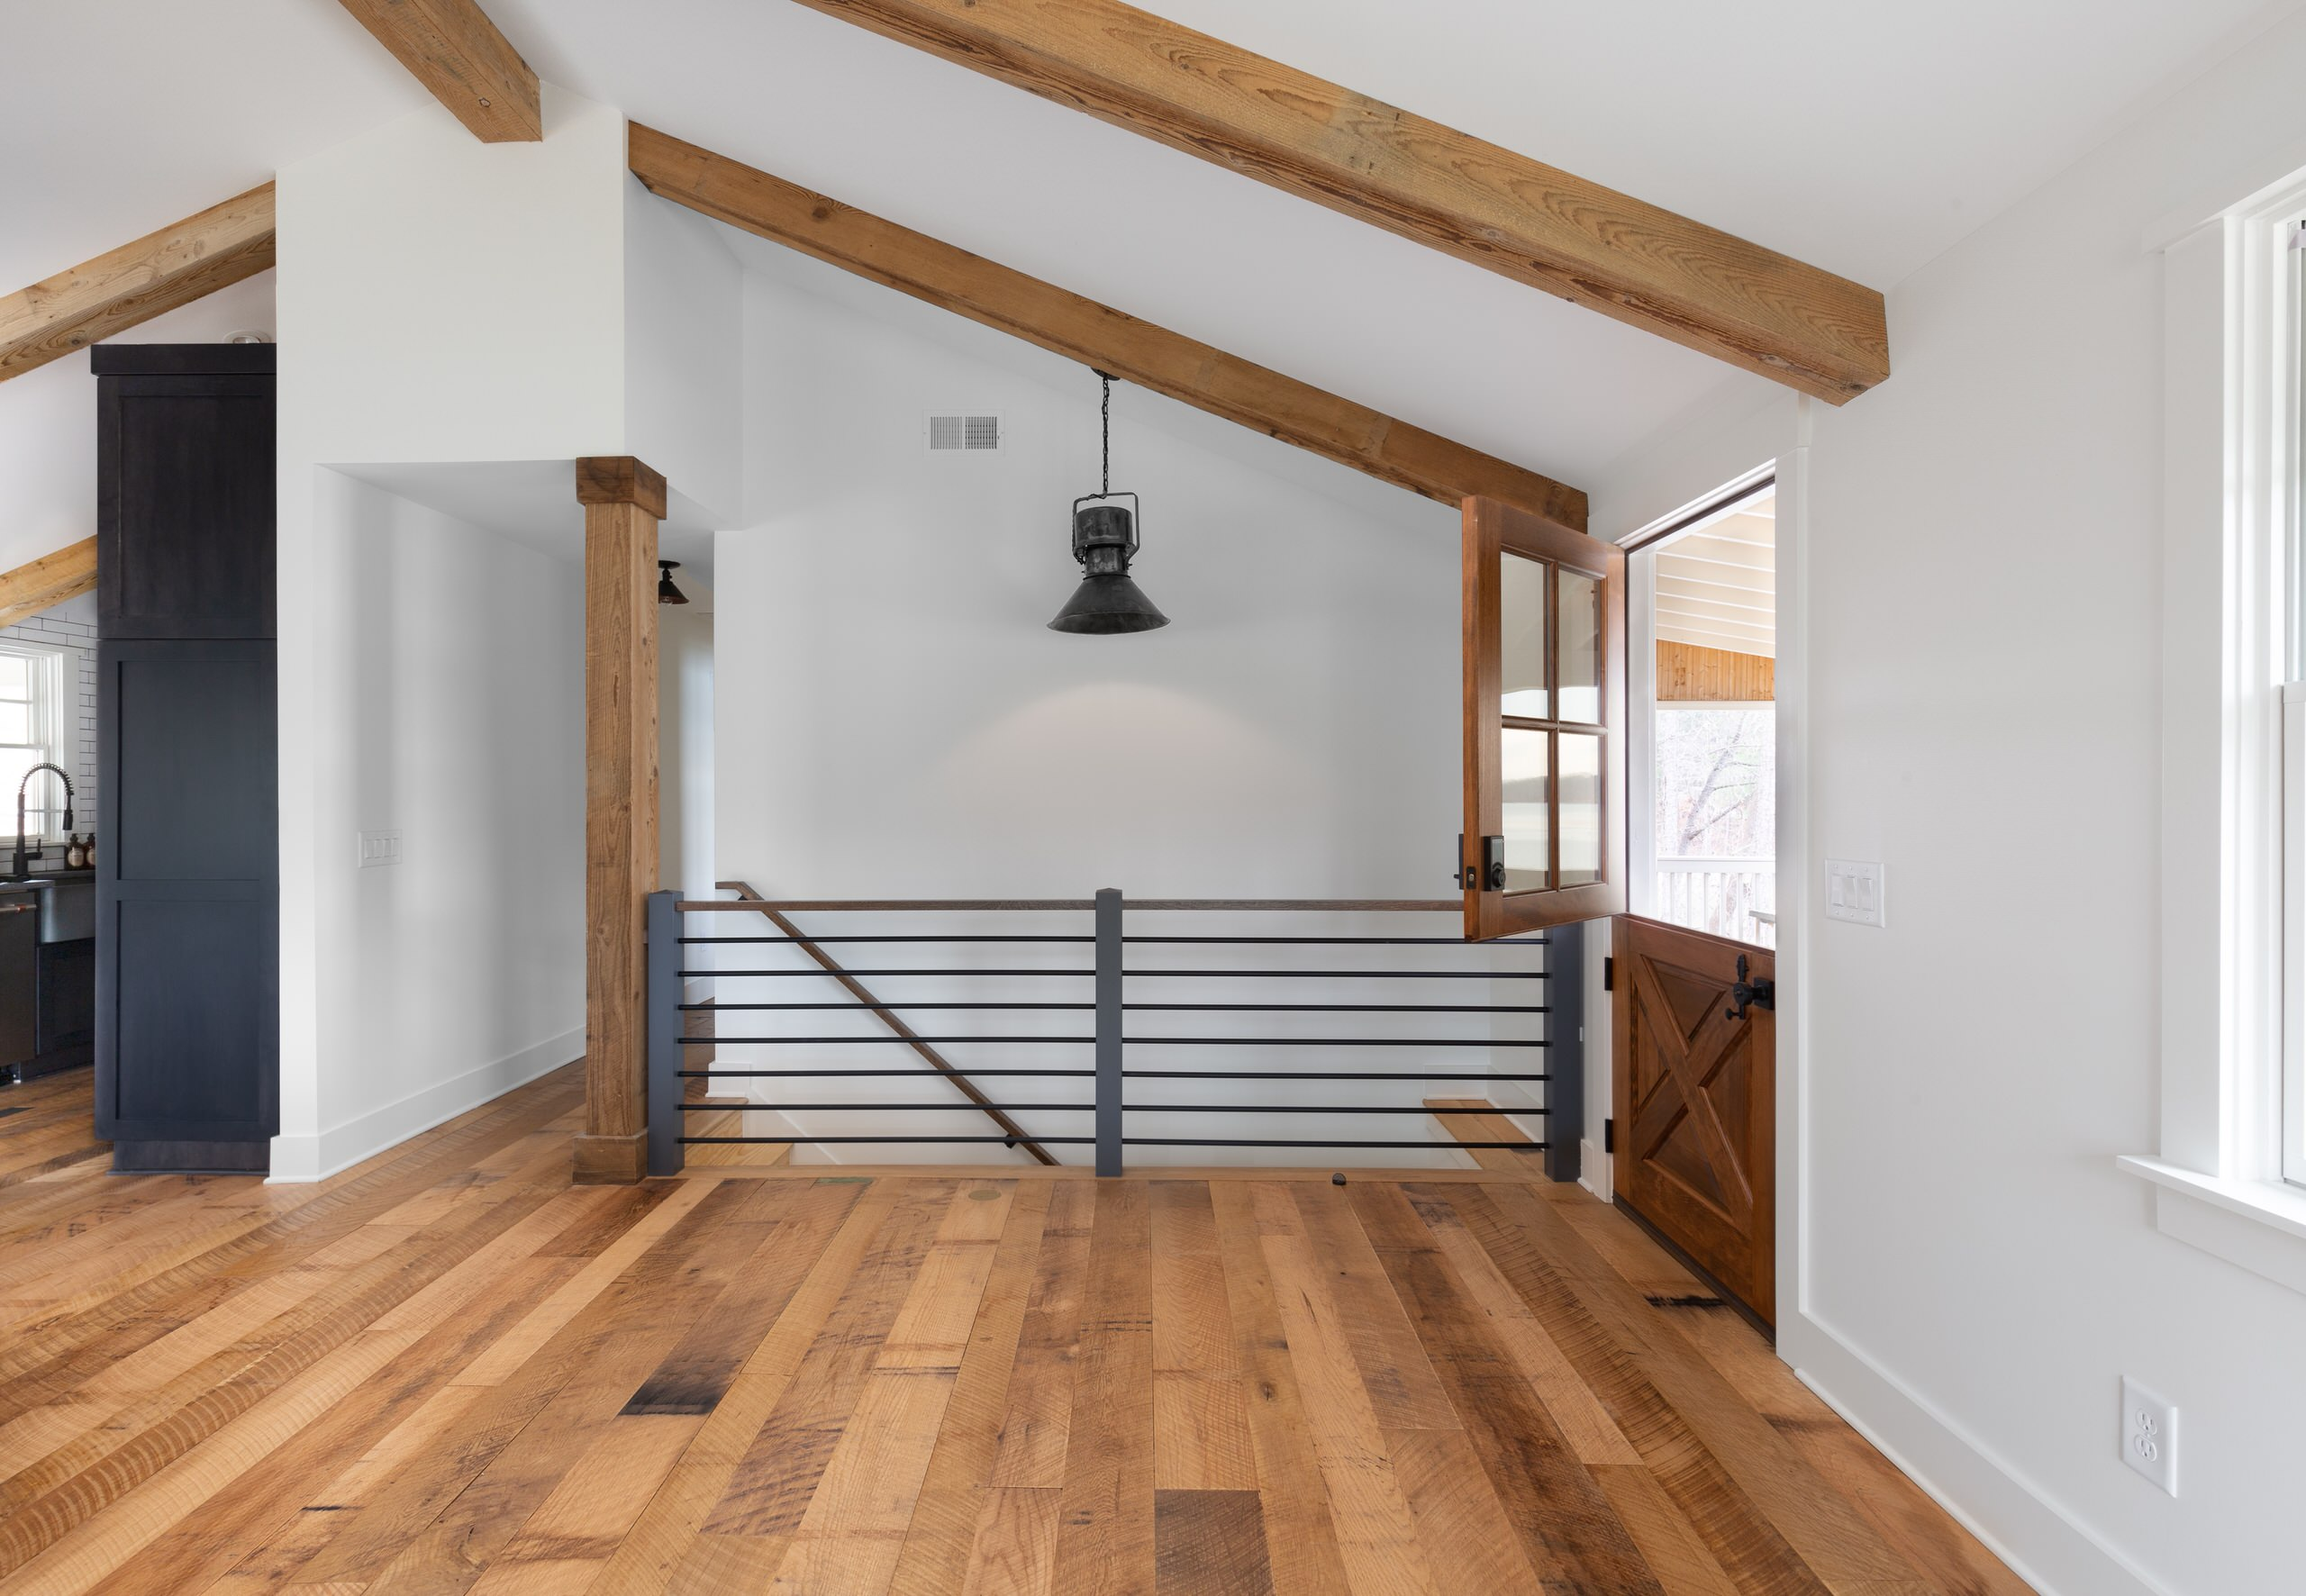 Stair case detail with antique industrial factory pendant light and Dutch door o